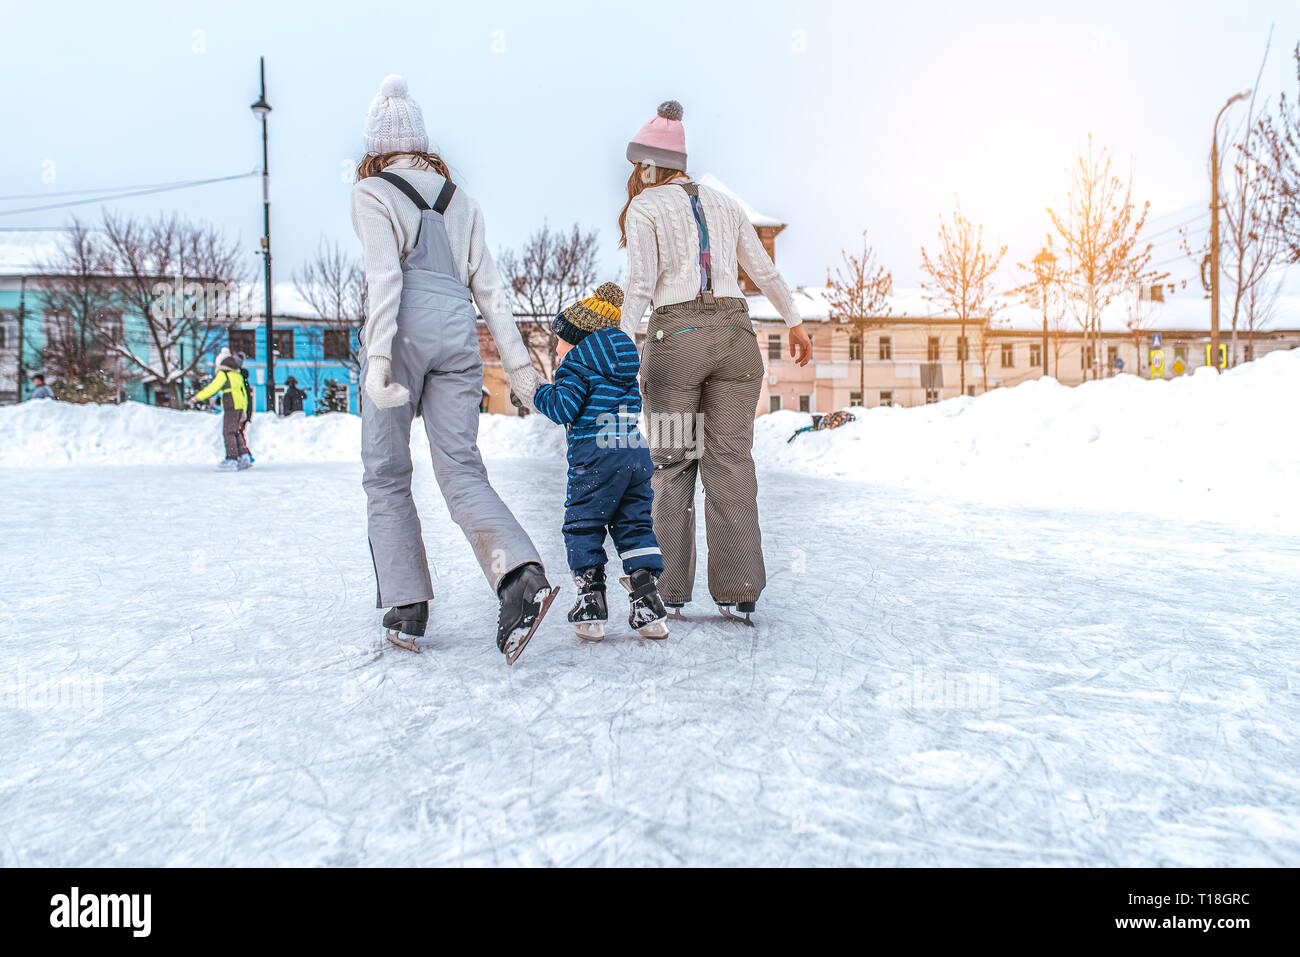 Parents of little boy ride on skating rink, view from rear, girls girlfriend girlfriends, teach son 3-5 years old, ride skating rink winter park. The - Stock Image